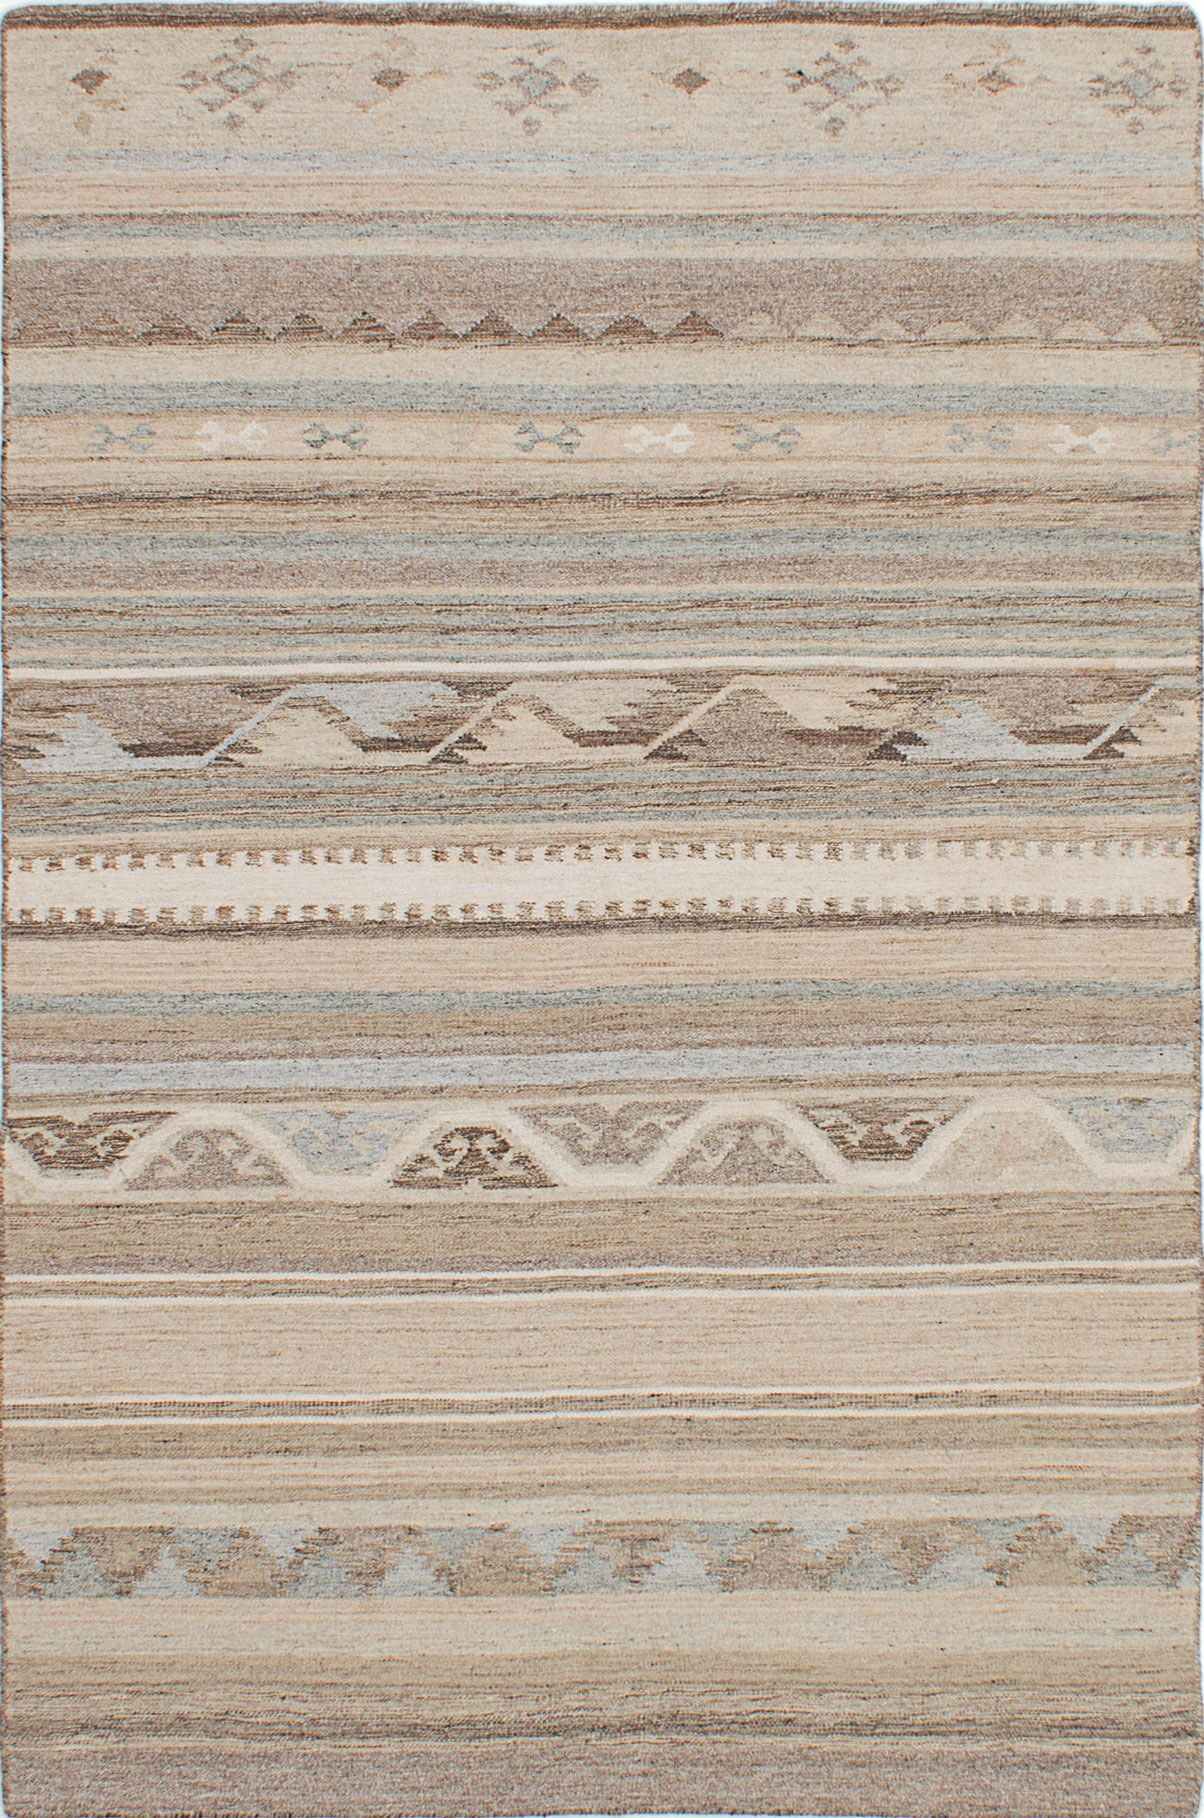 Tribeca Hand-Woven Beige/Brown Area Rug Rug Size: 8' x 10'